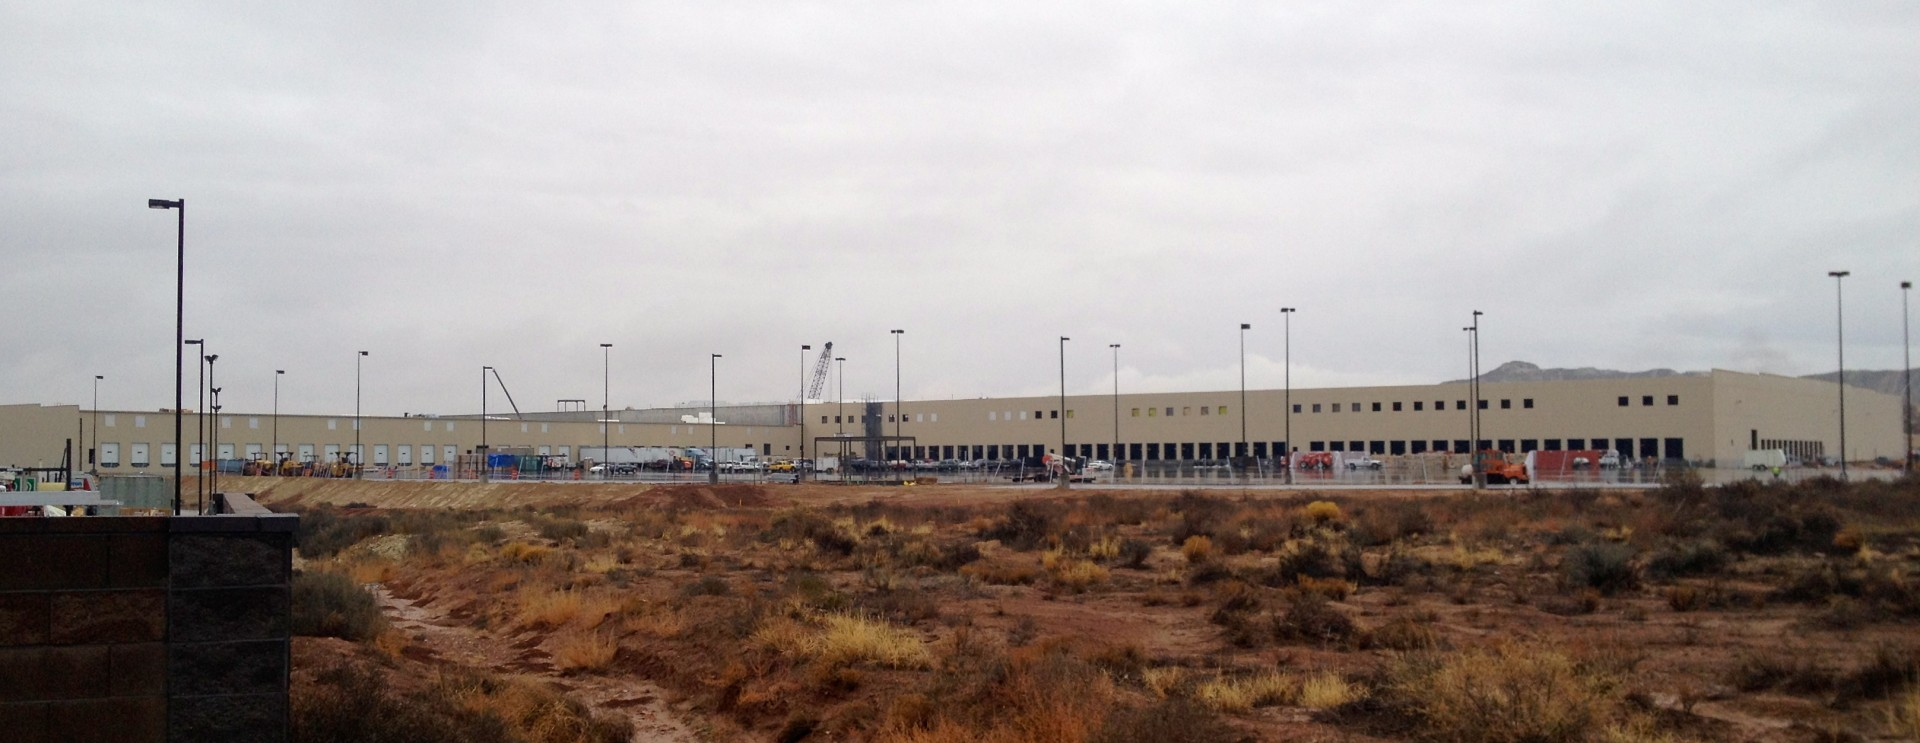 Family Dollar Distribution Center under construction in Fort Pierce Industrial Park, St. George, Utah, Dec. 14, 2012 | Photo by Sarafina Amodt, St. George News